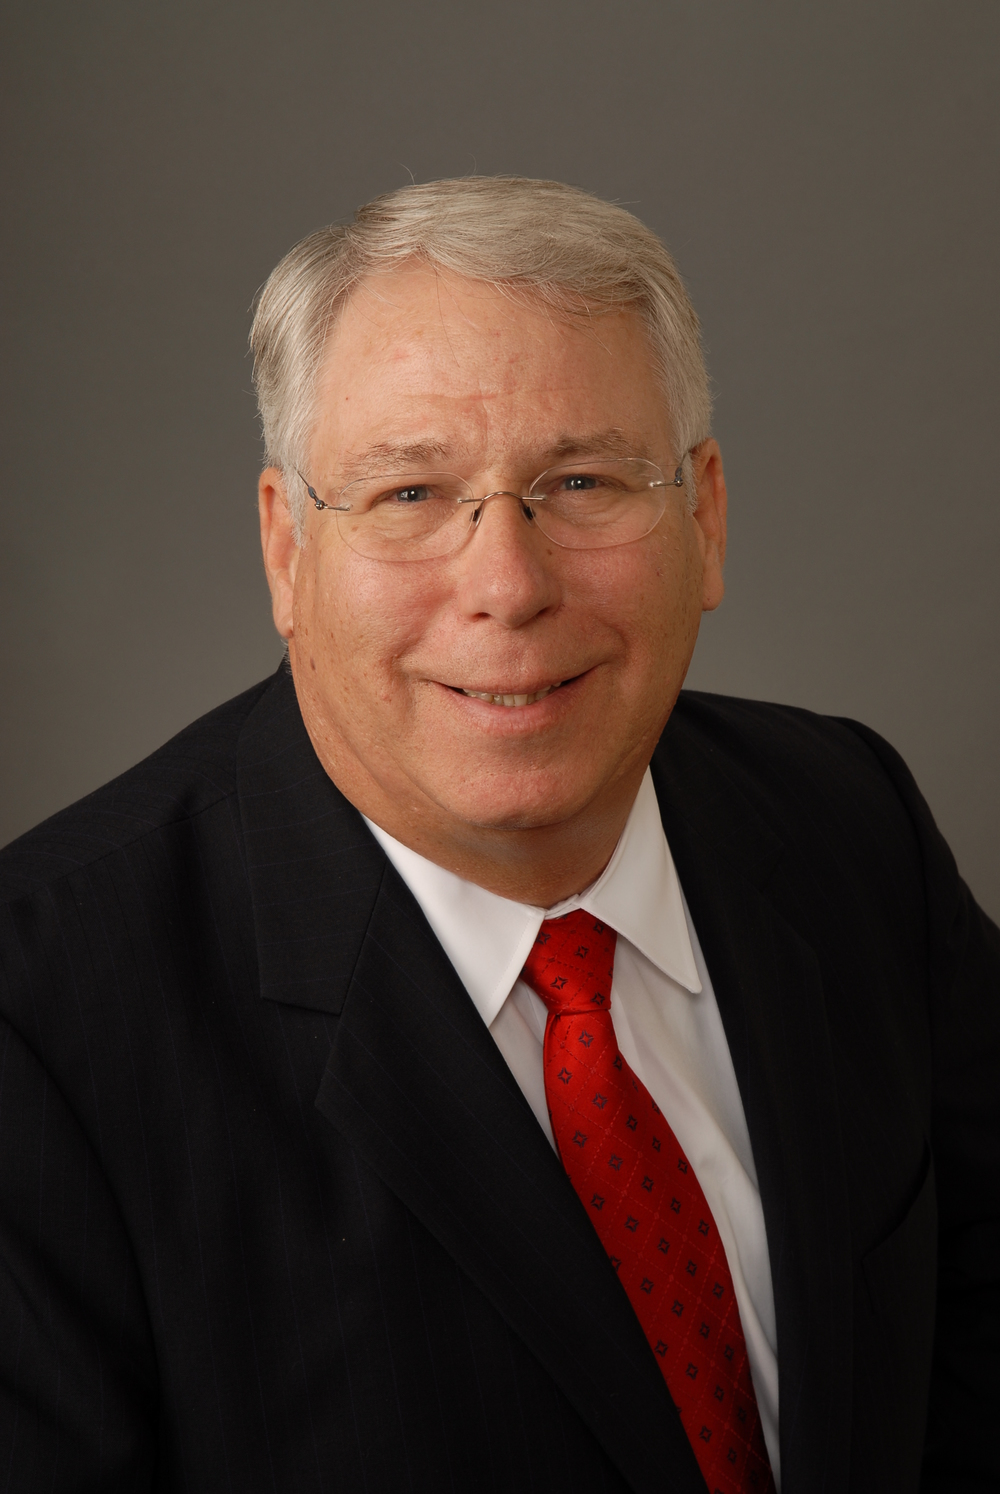 Walter Breakell   is the firm's principal. He has been practicing law and serving the construction industry for more than three decades. Click through to read Walter's full bio.